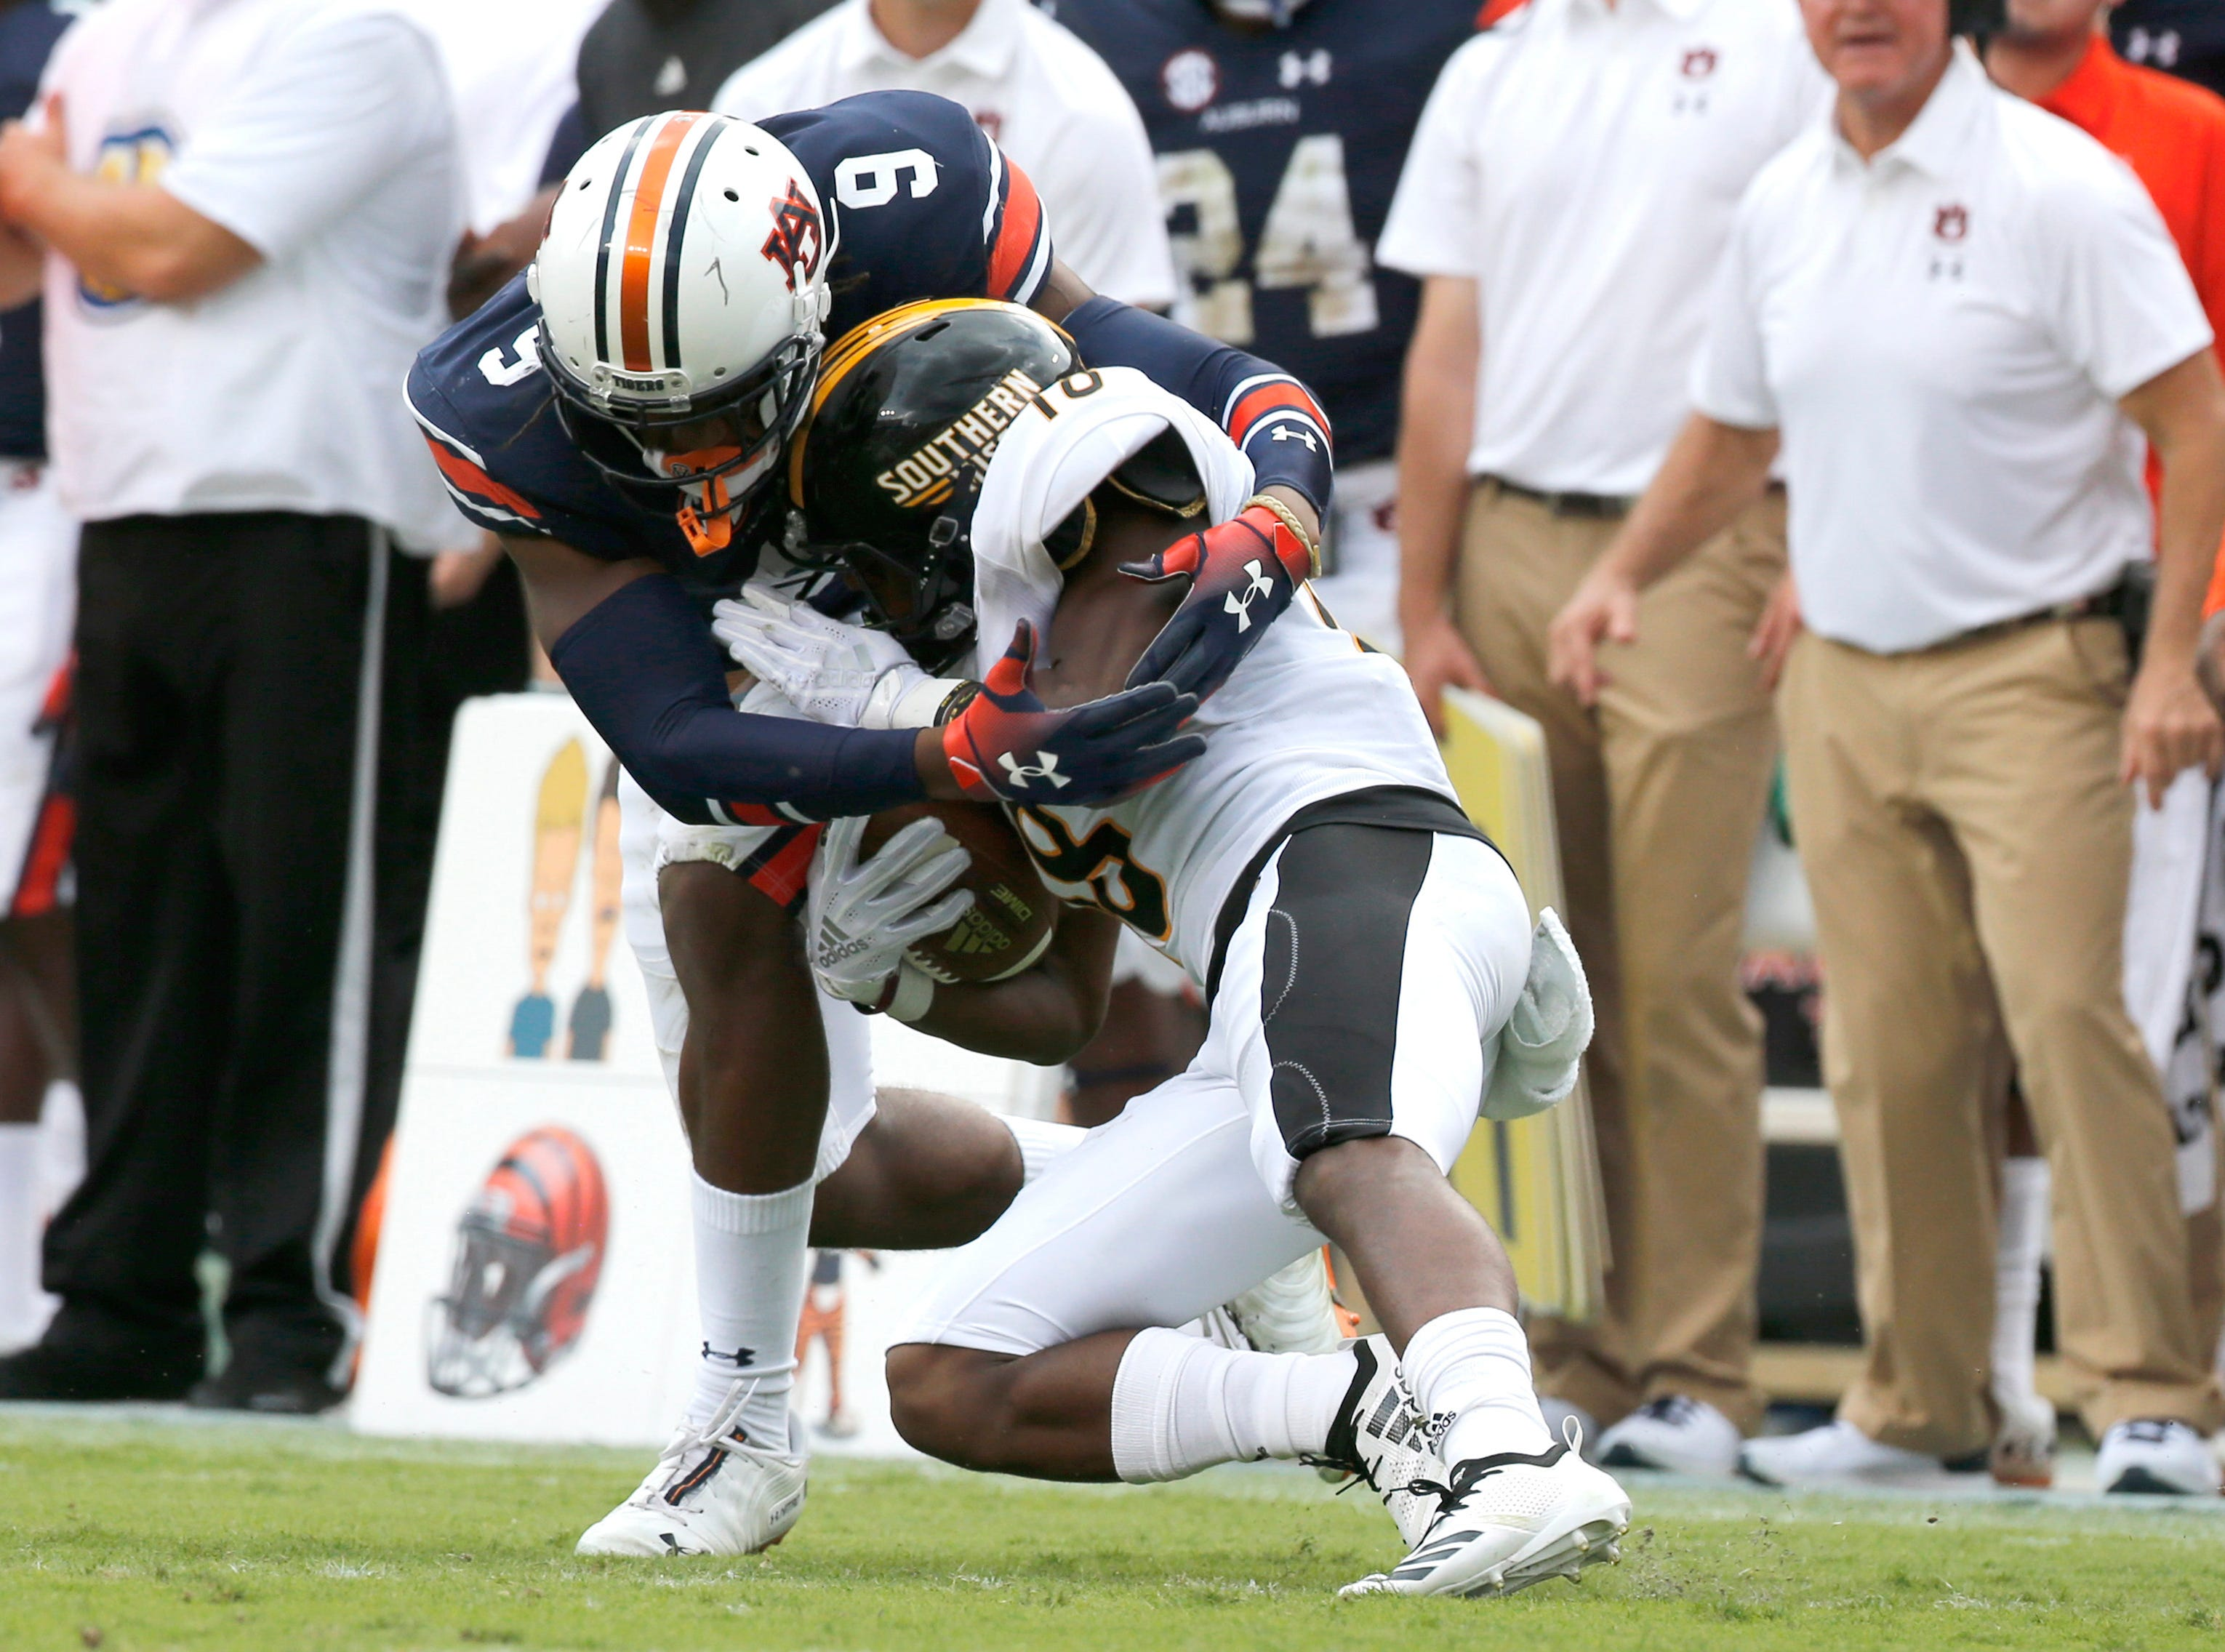 Sep 29, 2018; Auburn, AL, USA; Southern Miss Golden Eagles received er De'Michael Harris (18) is tackled by Auburn Tigers defensive back Jamien Sherwood (9) during the first quarter at Jordan-Hare Stadium. Mandatory Credit: John Reed-USA TODAY Sports